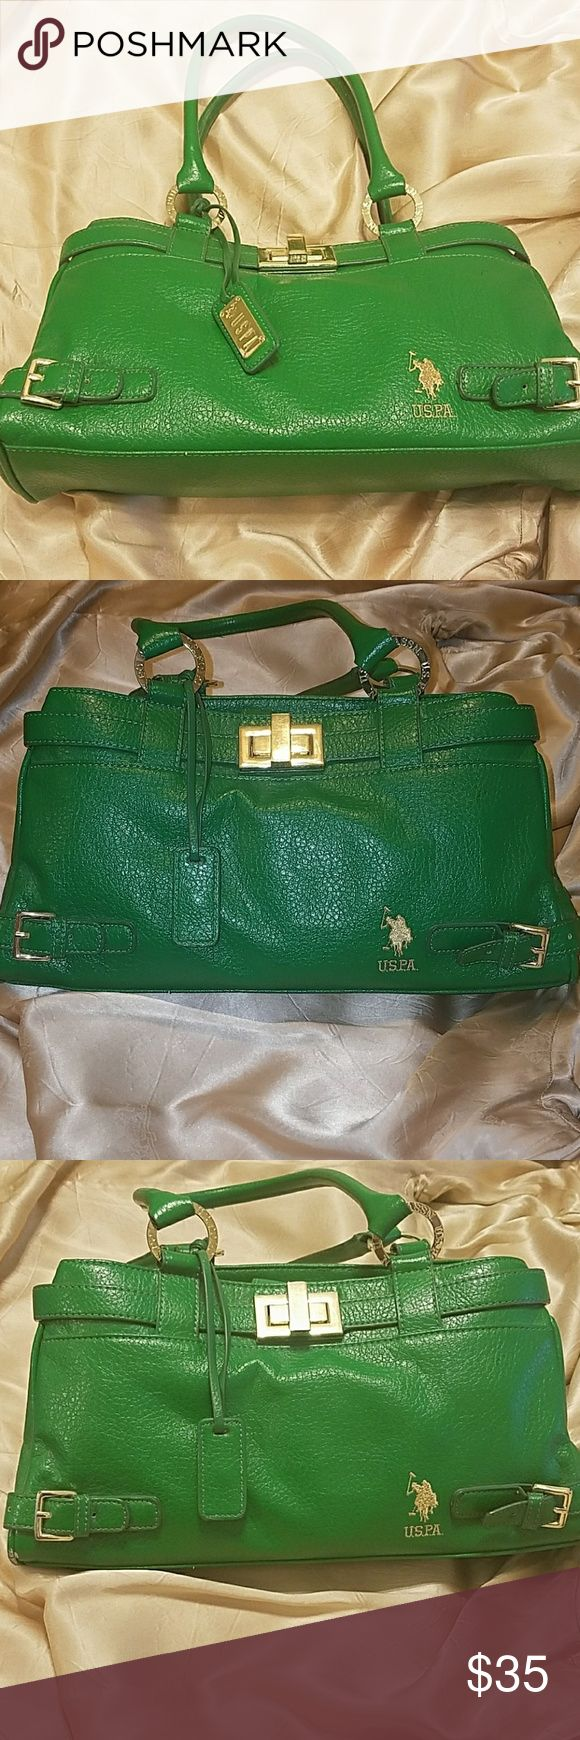 Green US POLO Handbag Green US POLO Handbag with gold embellishments. Great for a lunch with the girls or work. Well put together type of bag. U.S. Polo Assn. Bags